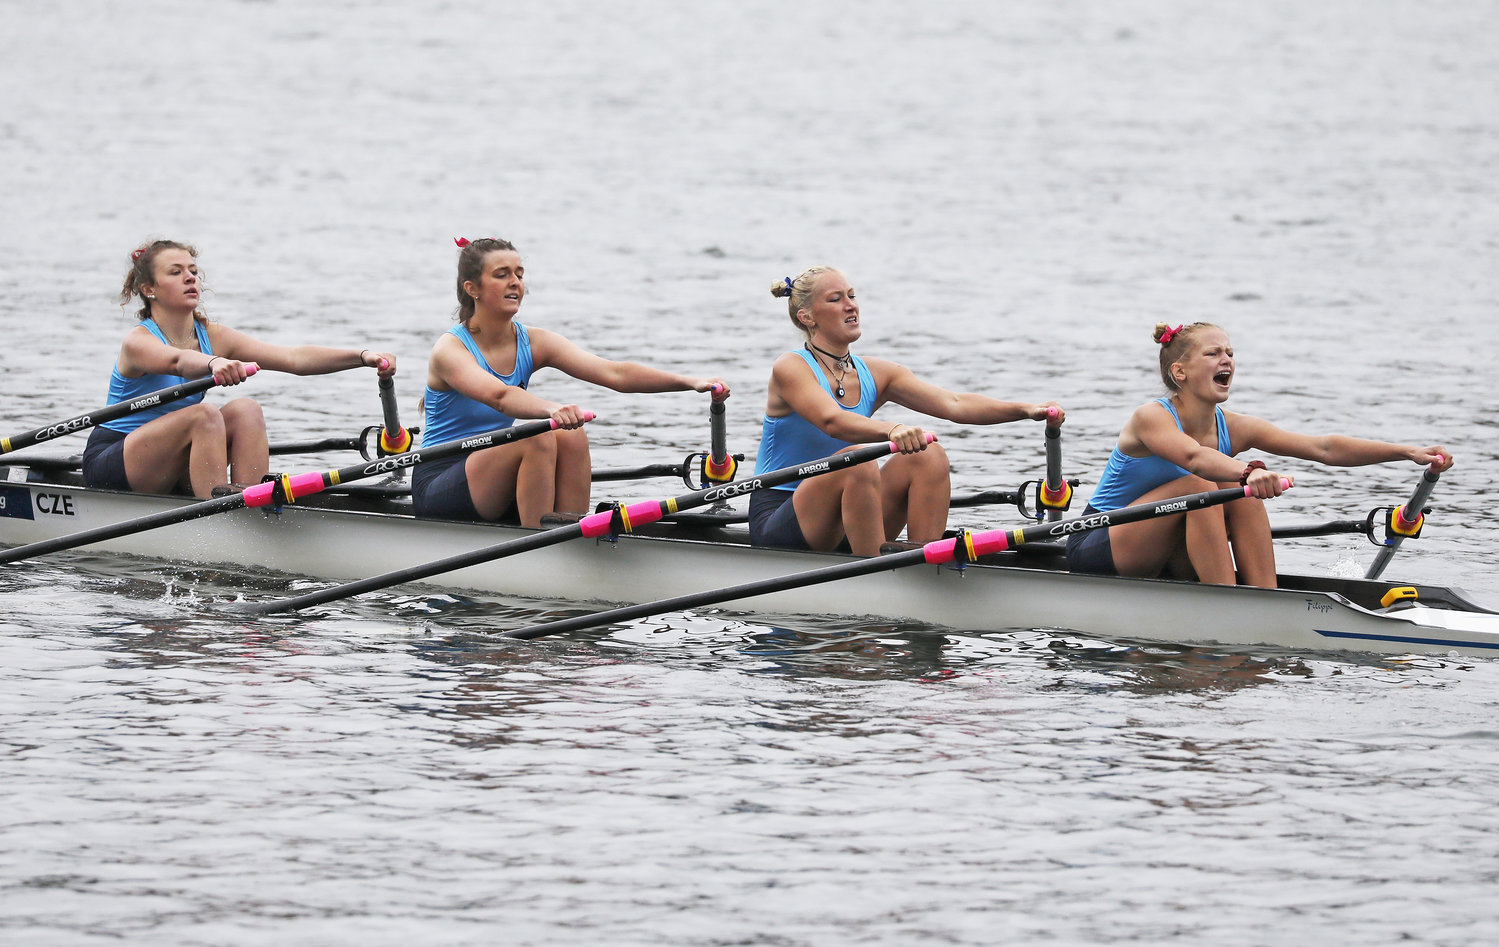 A quartet of Springside crew rowers was among the many local school teams that returned to the sport after a long absence forced by COVID-19 restrictions. (Photo by Tom Utescher)